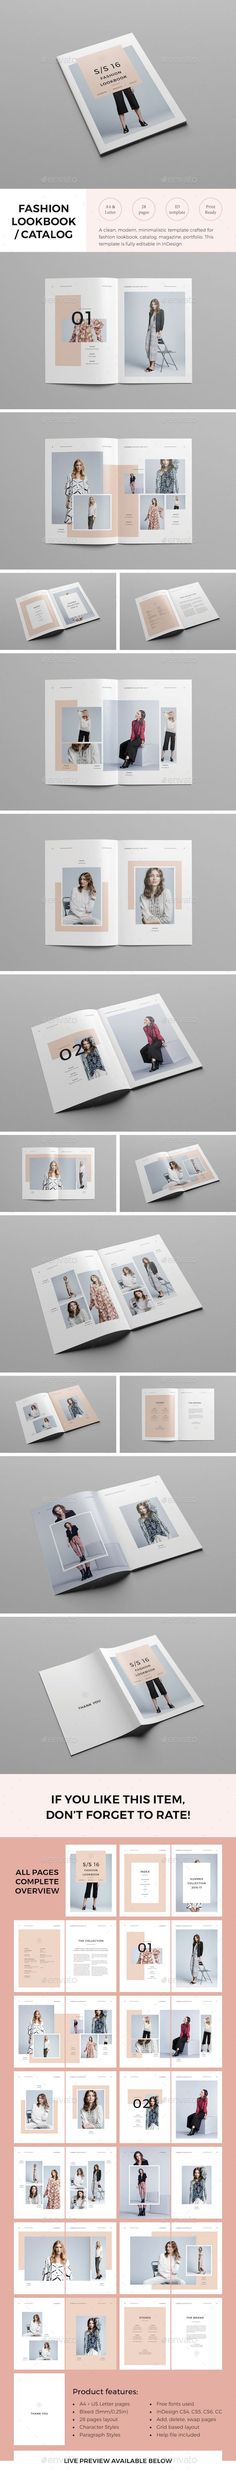 42 new Ideas fashion magazine design layout look books Lookbook Layout, Lookbook Design, Web Design, Layout Design, Page Layout, Editorial Layout, Editorial Design, Editorial Fashion, Layout Inspiration